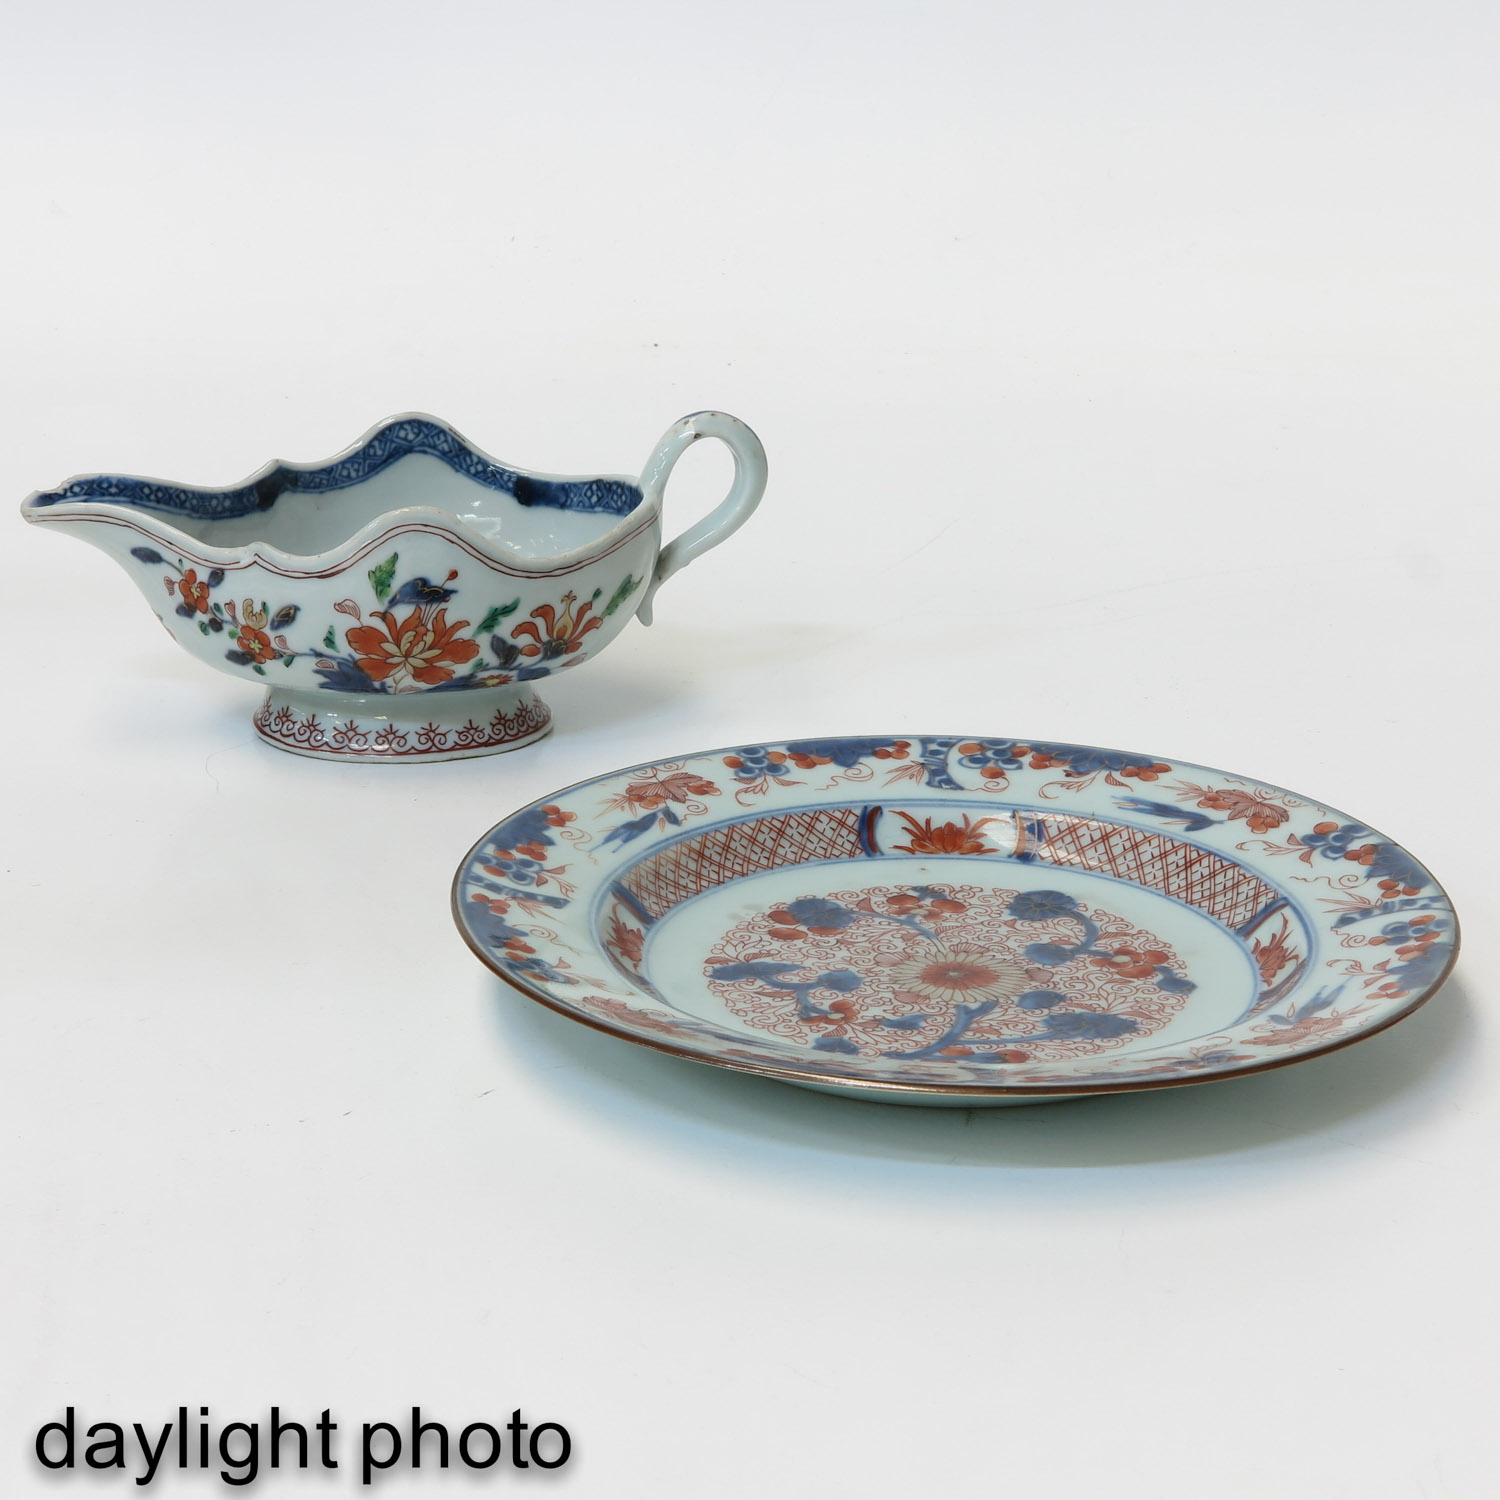 An Imari Plate and Gravy Boat - Image 7 of 10